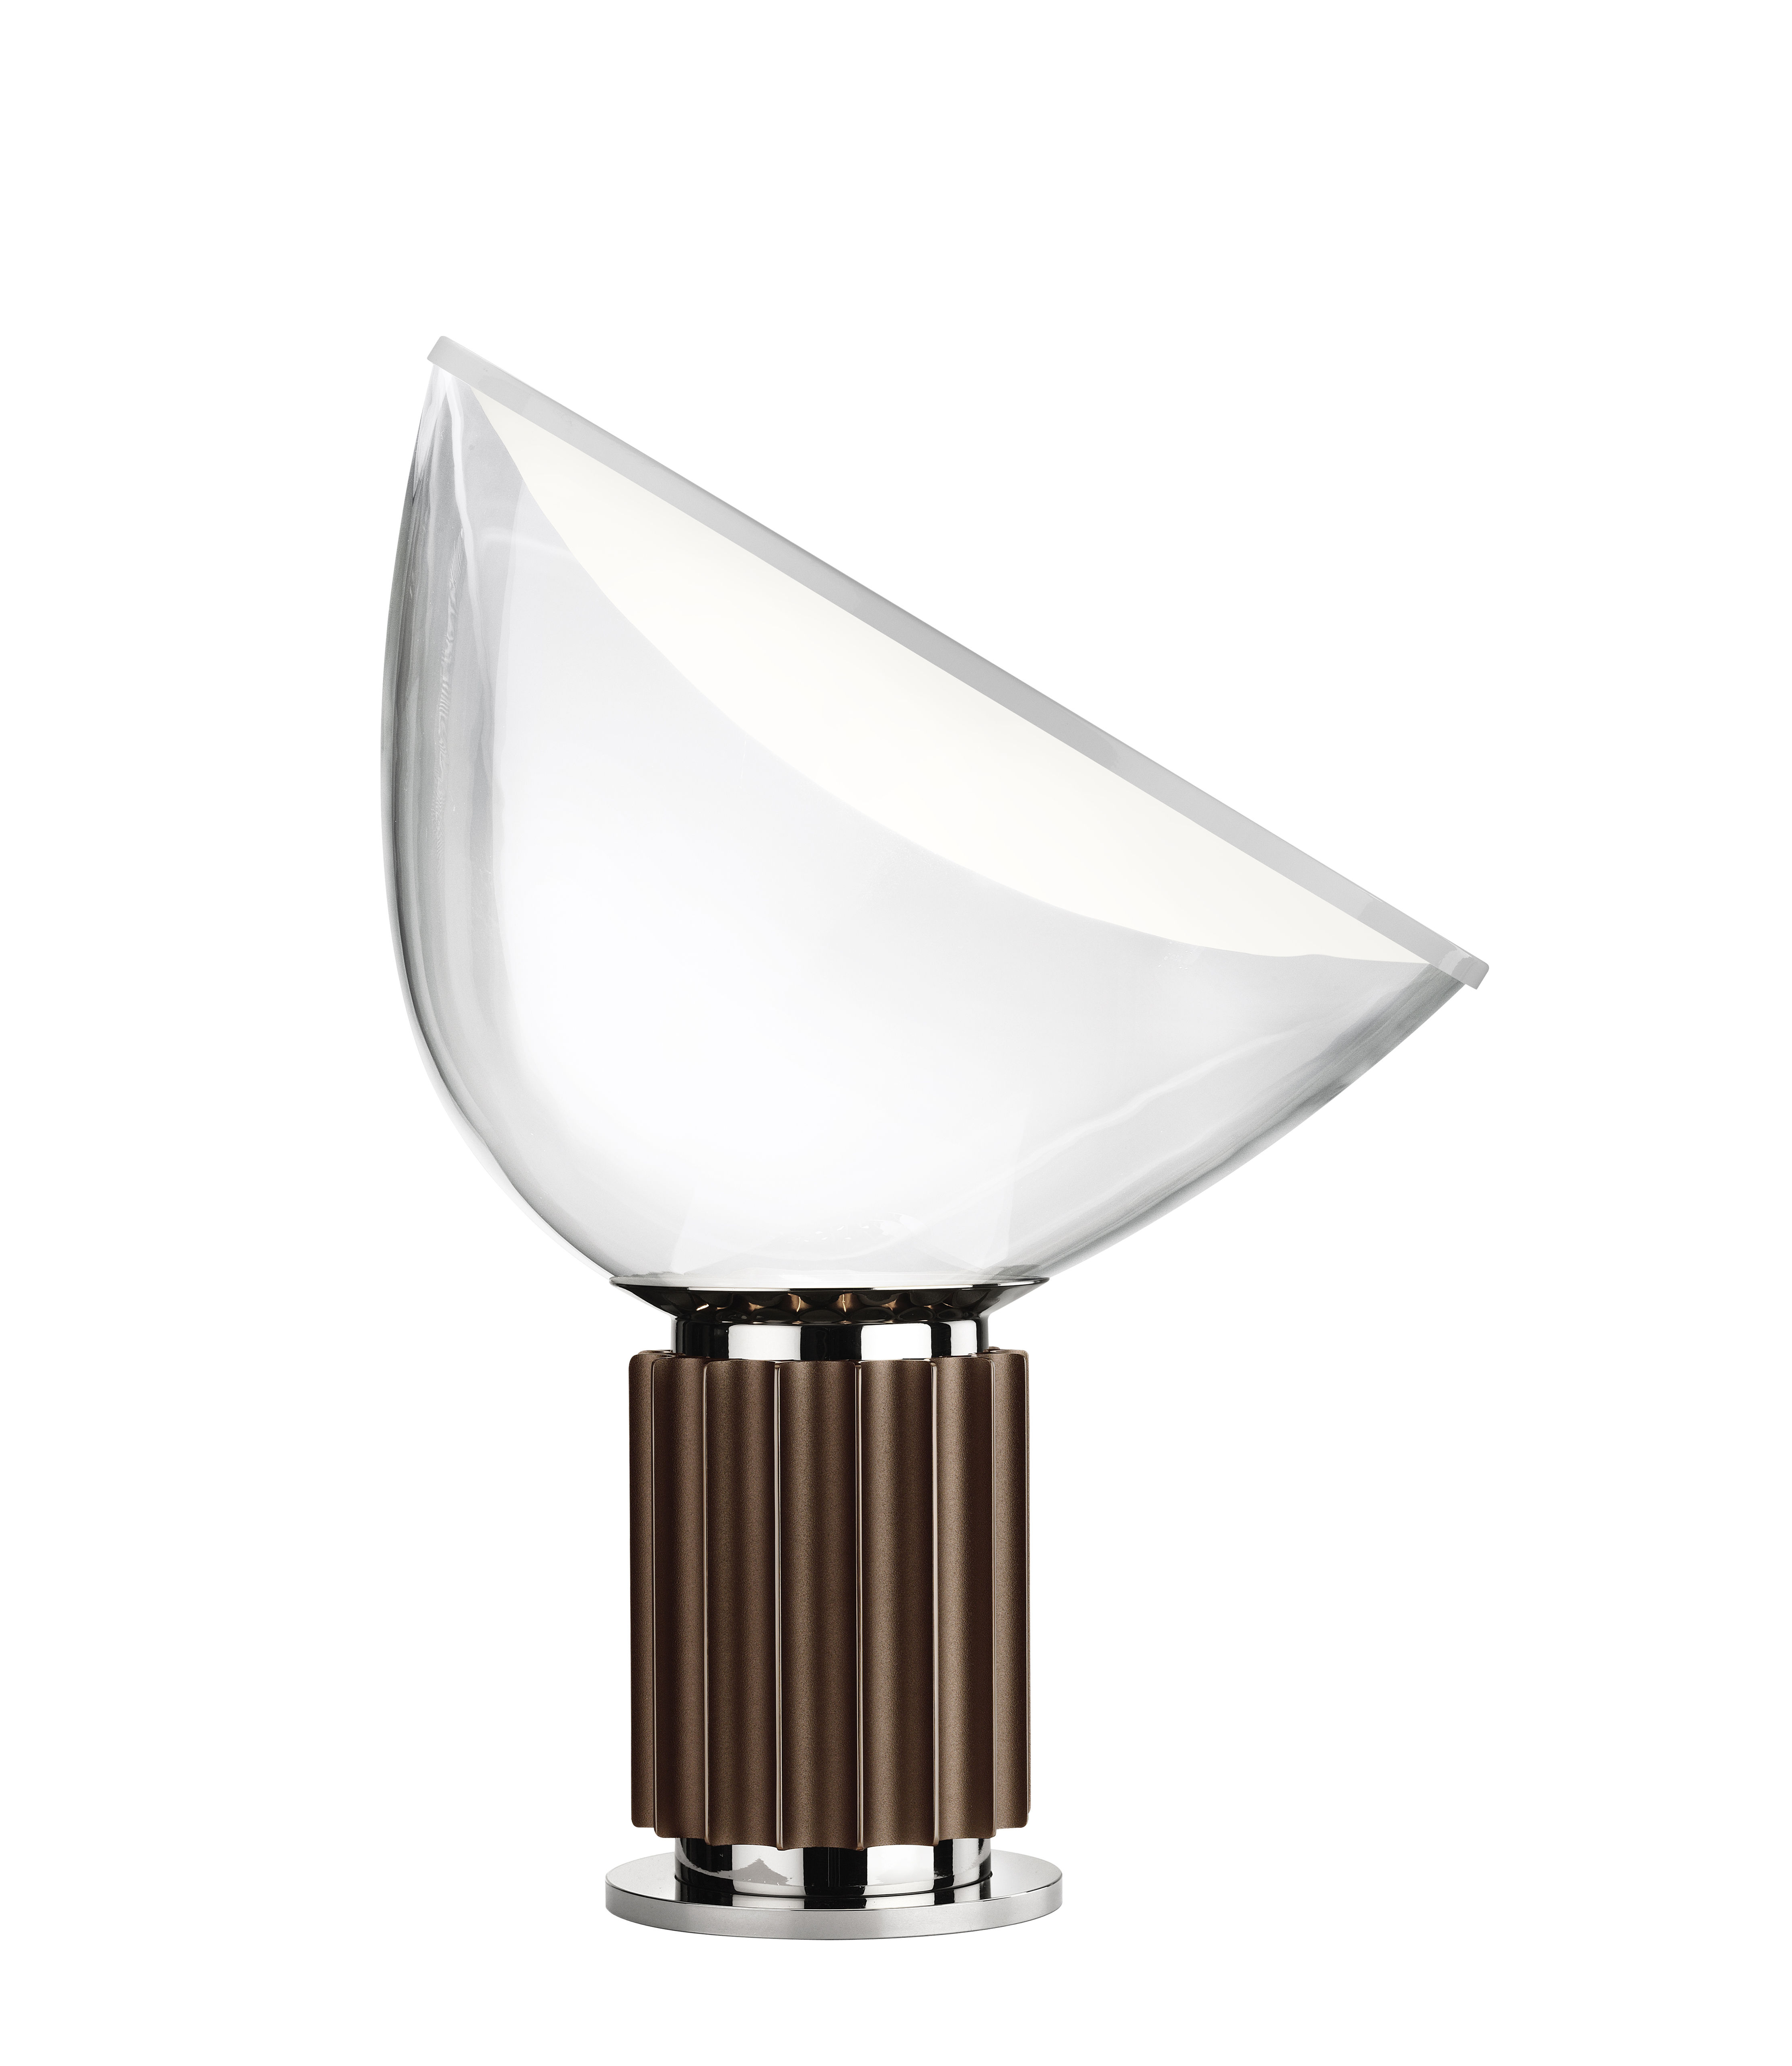 Lighting - Table Lamps - Taccia LED Small Table lamp - Glass diffusor - H 48 cm by Flos - Bronze - Aluminium, Blown glass